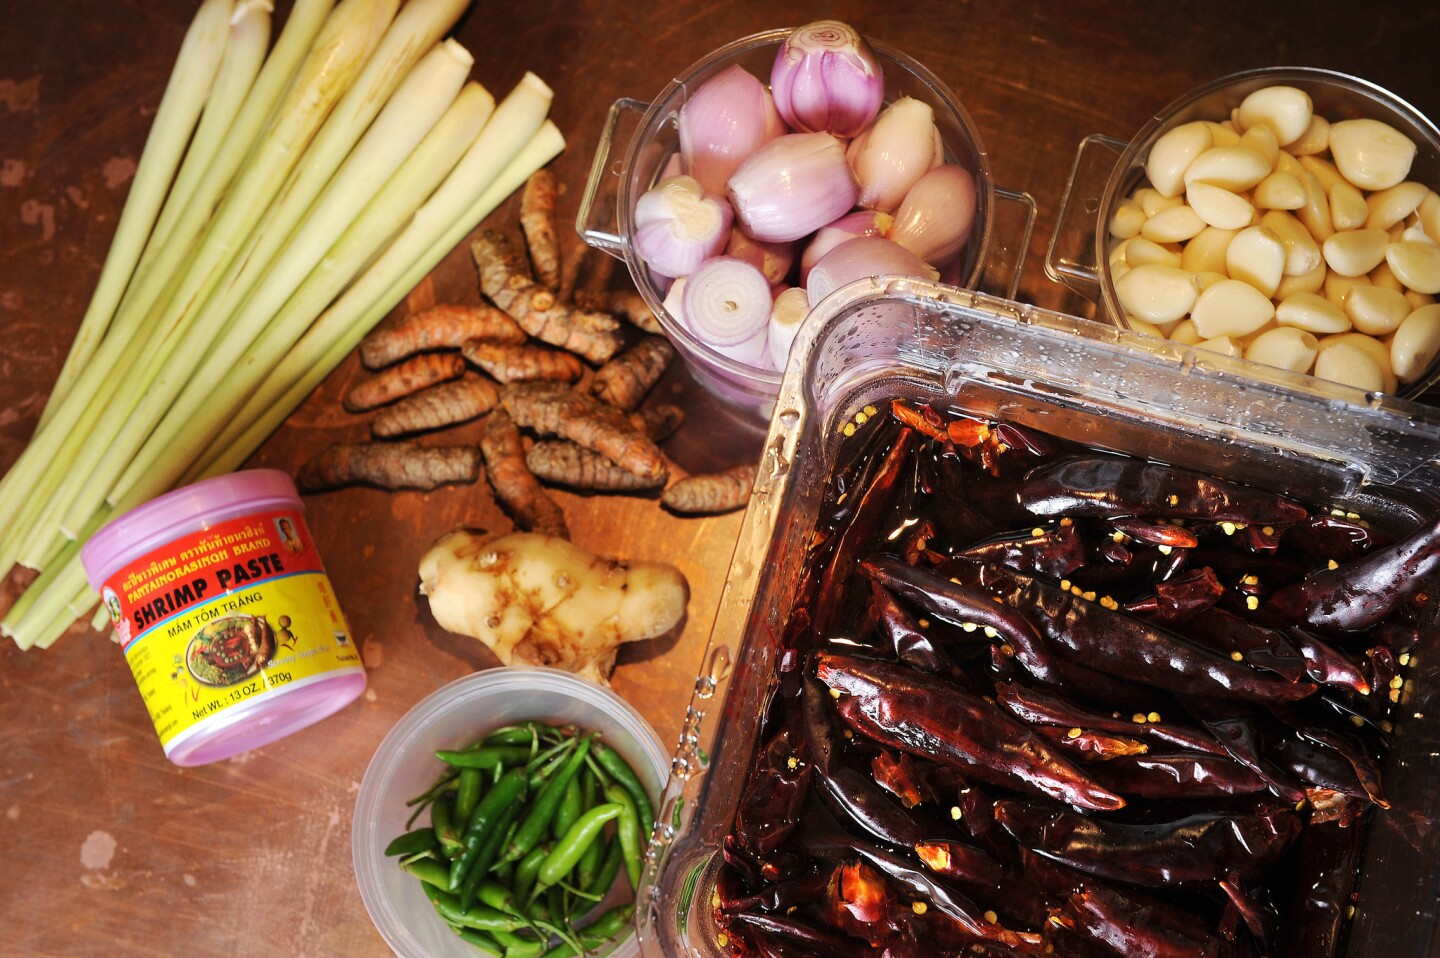 Some of the ingredients needed for the turmeric and coconut curry including (from left) lemongrass, shrimp paste, turmeric, galangal, shallots, garlic, Thai green chiles and Puya chiles.